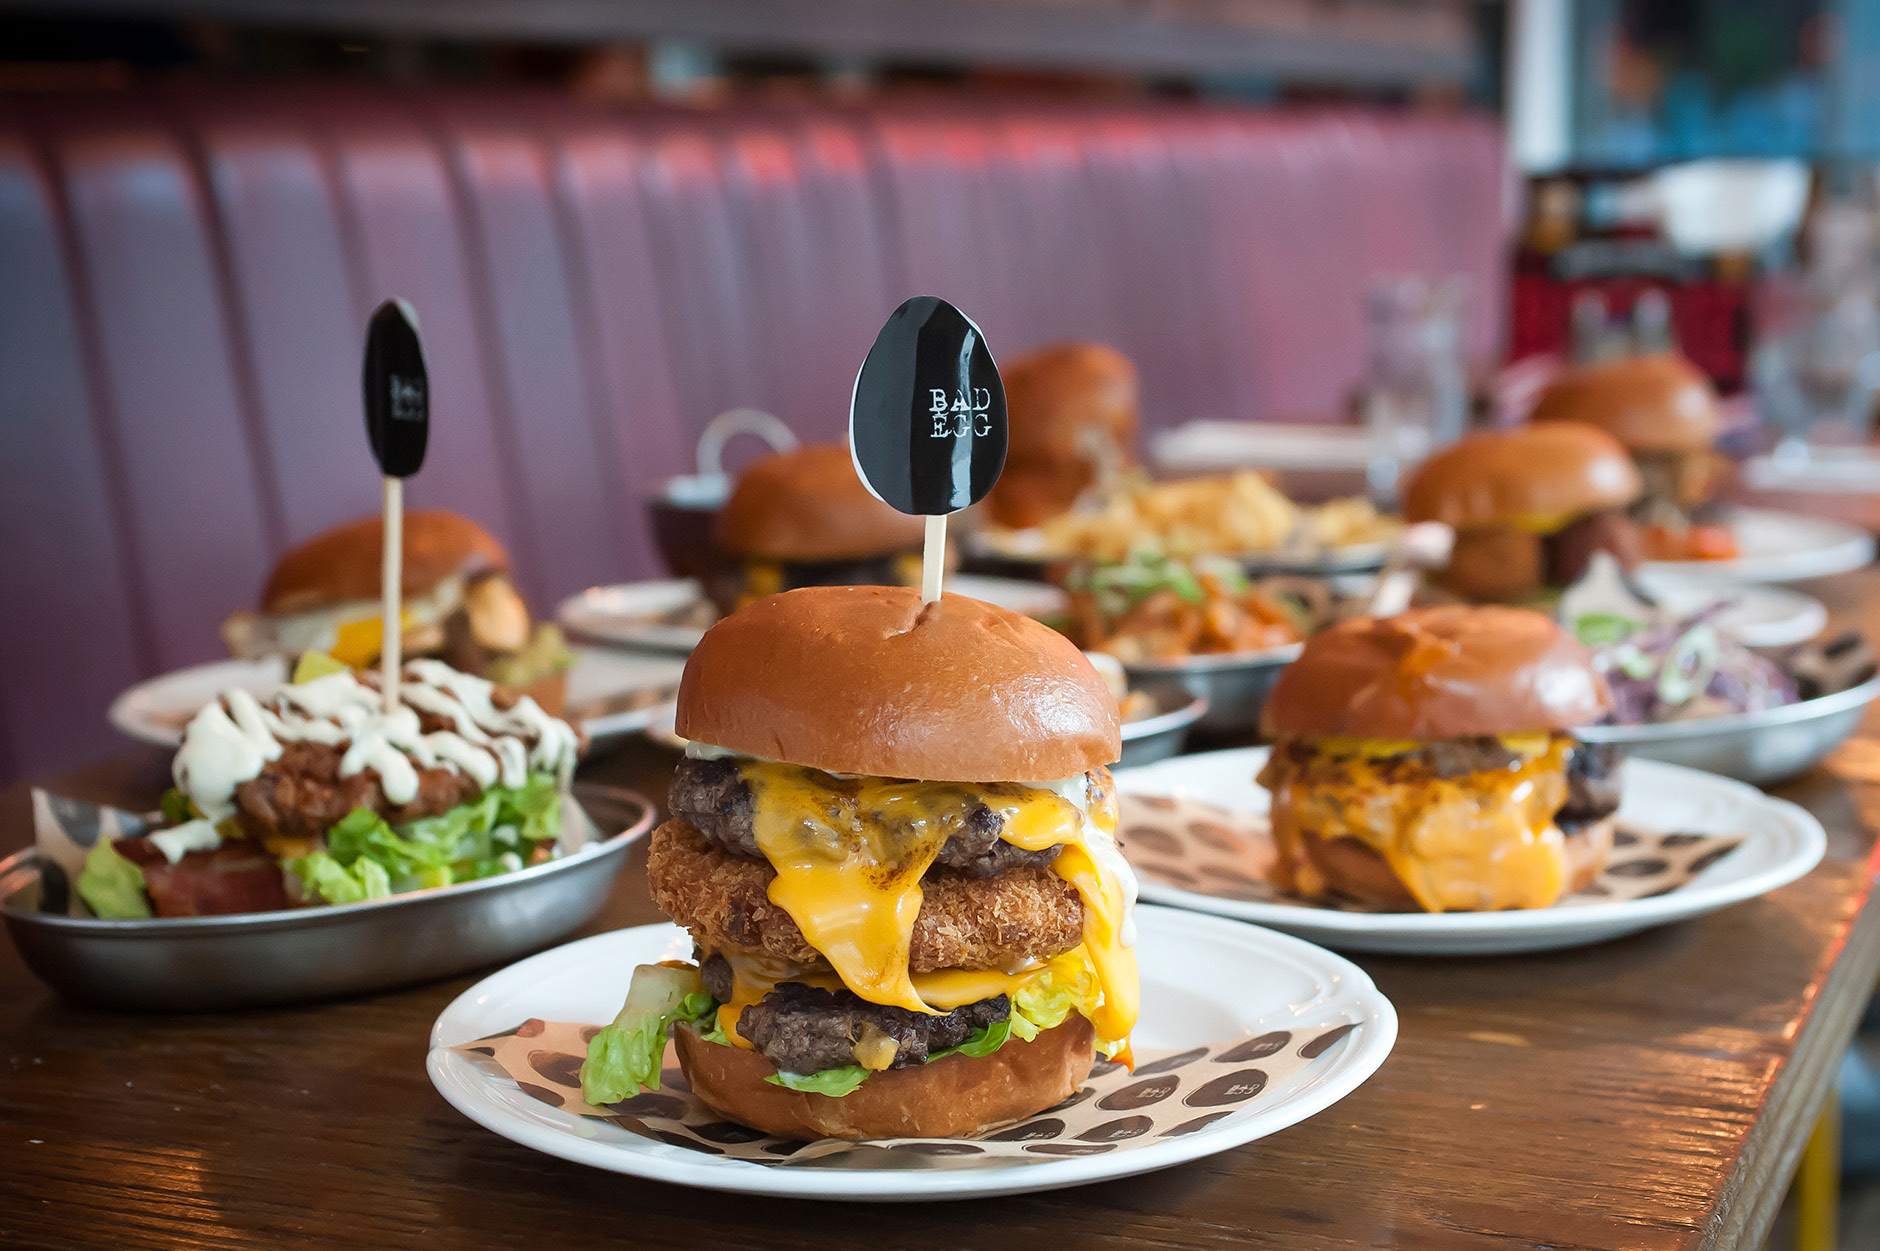 Bad_Egg_Moorgate_food_burgers_multiple_2